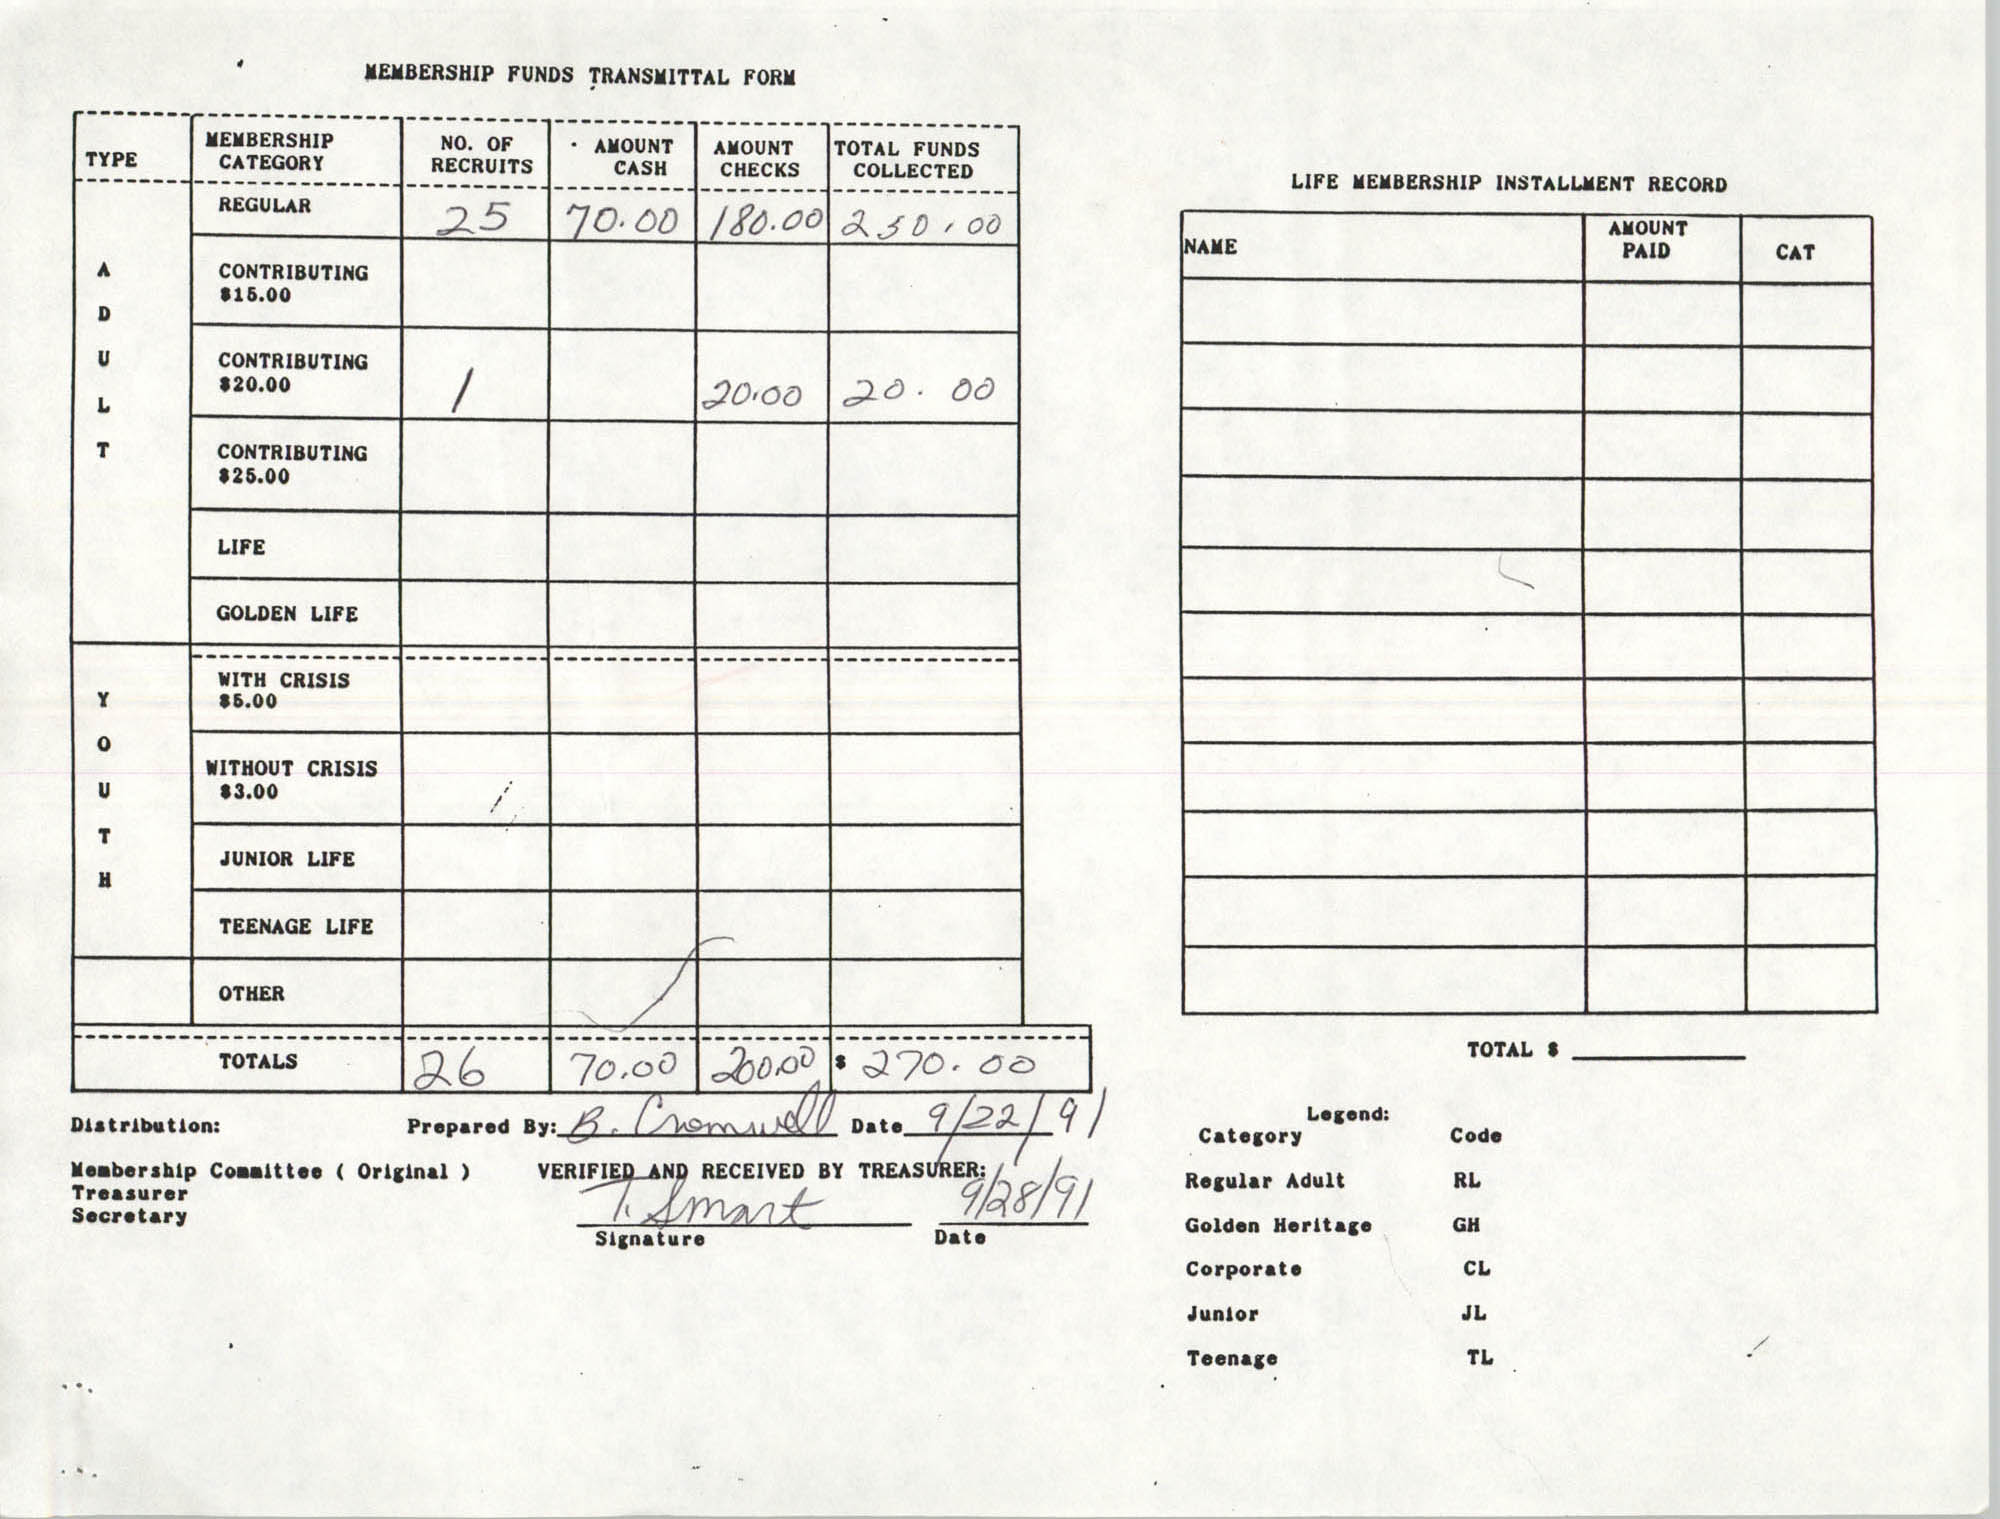 Charleston Branch of the NAACP Funds Transmittal Forms, September 1991, Page 40